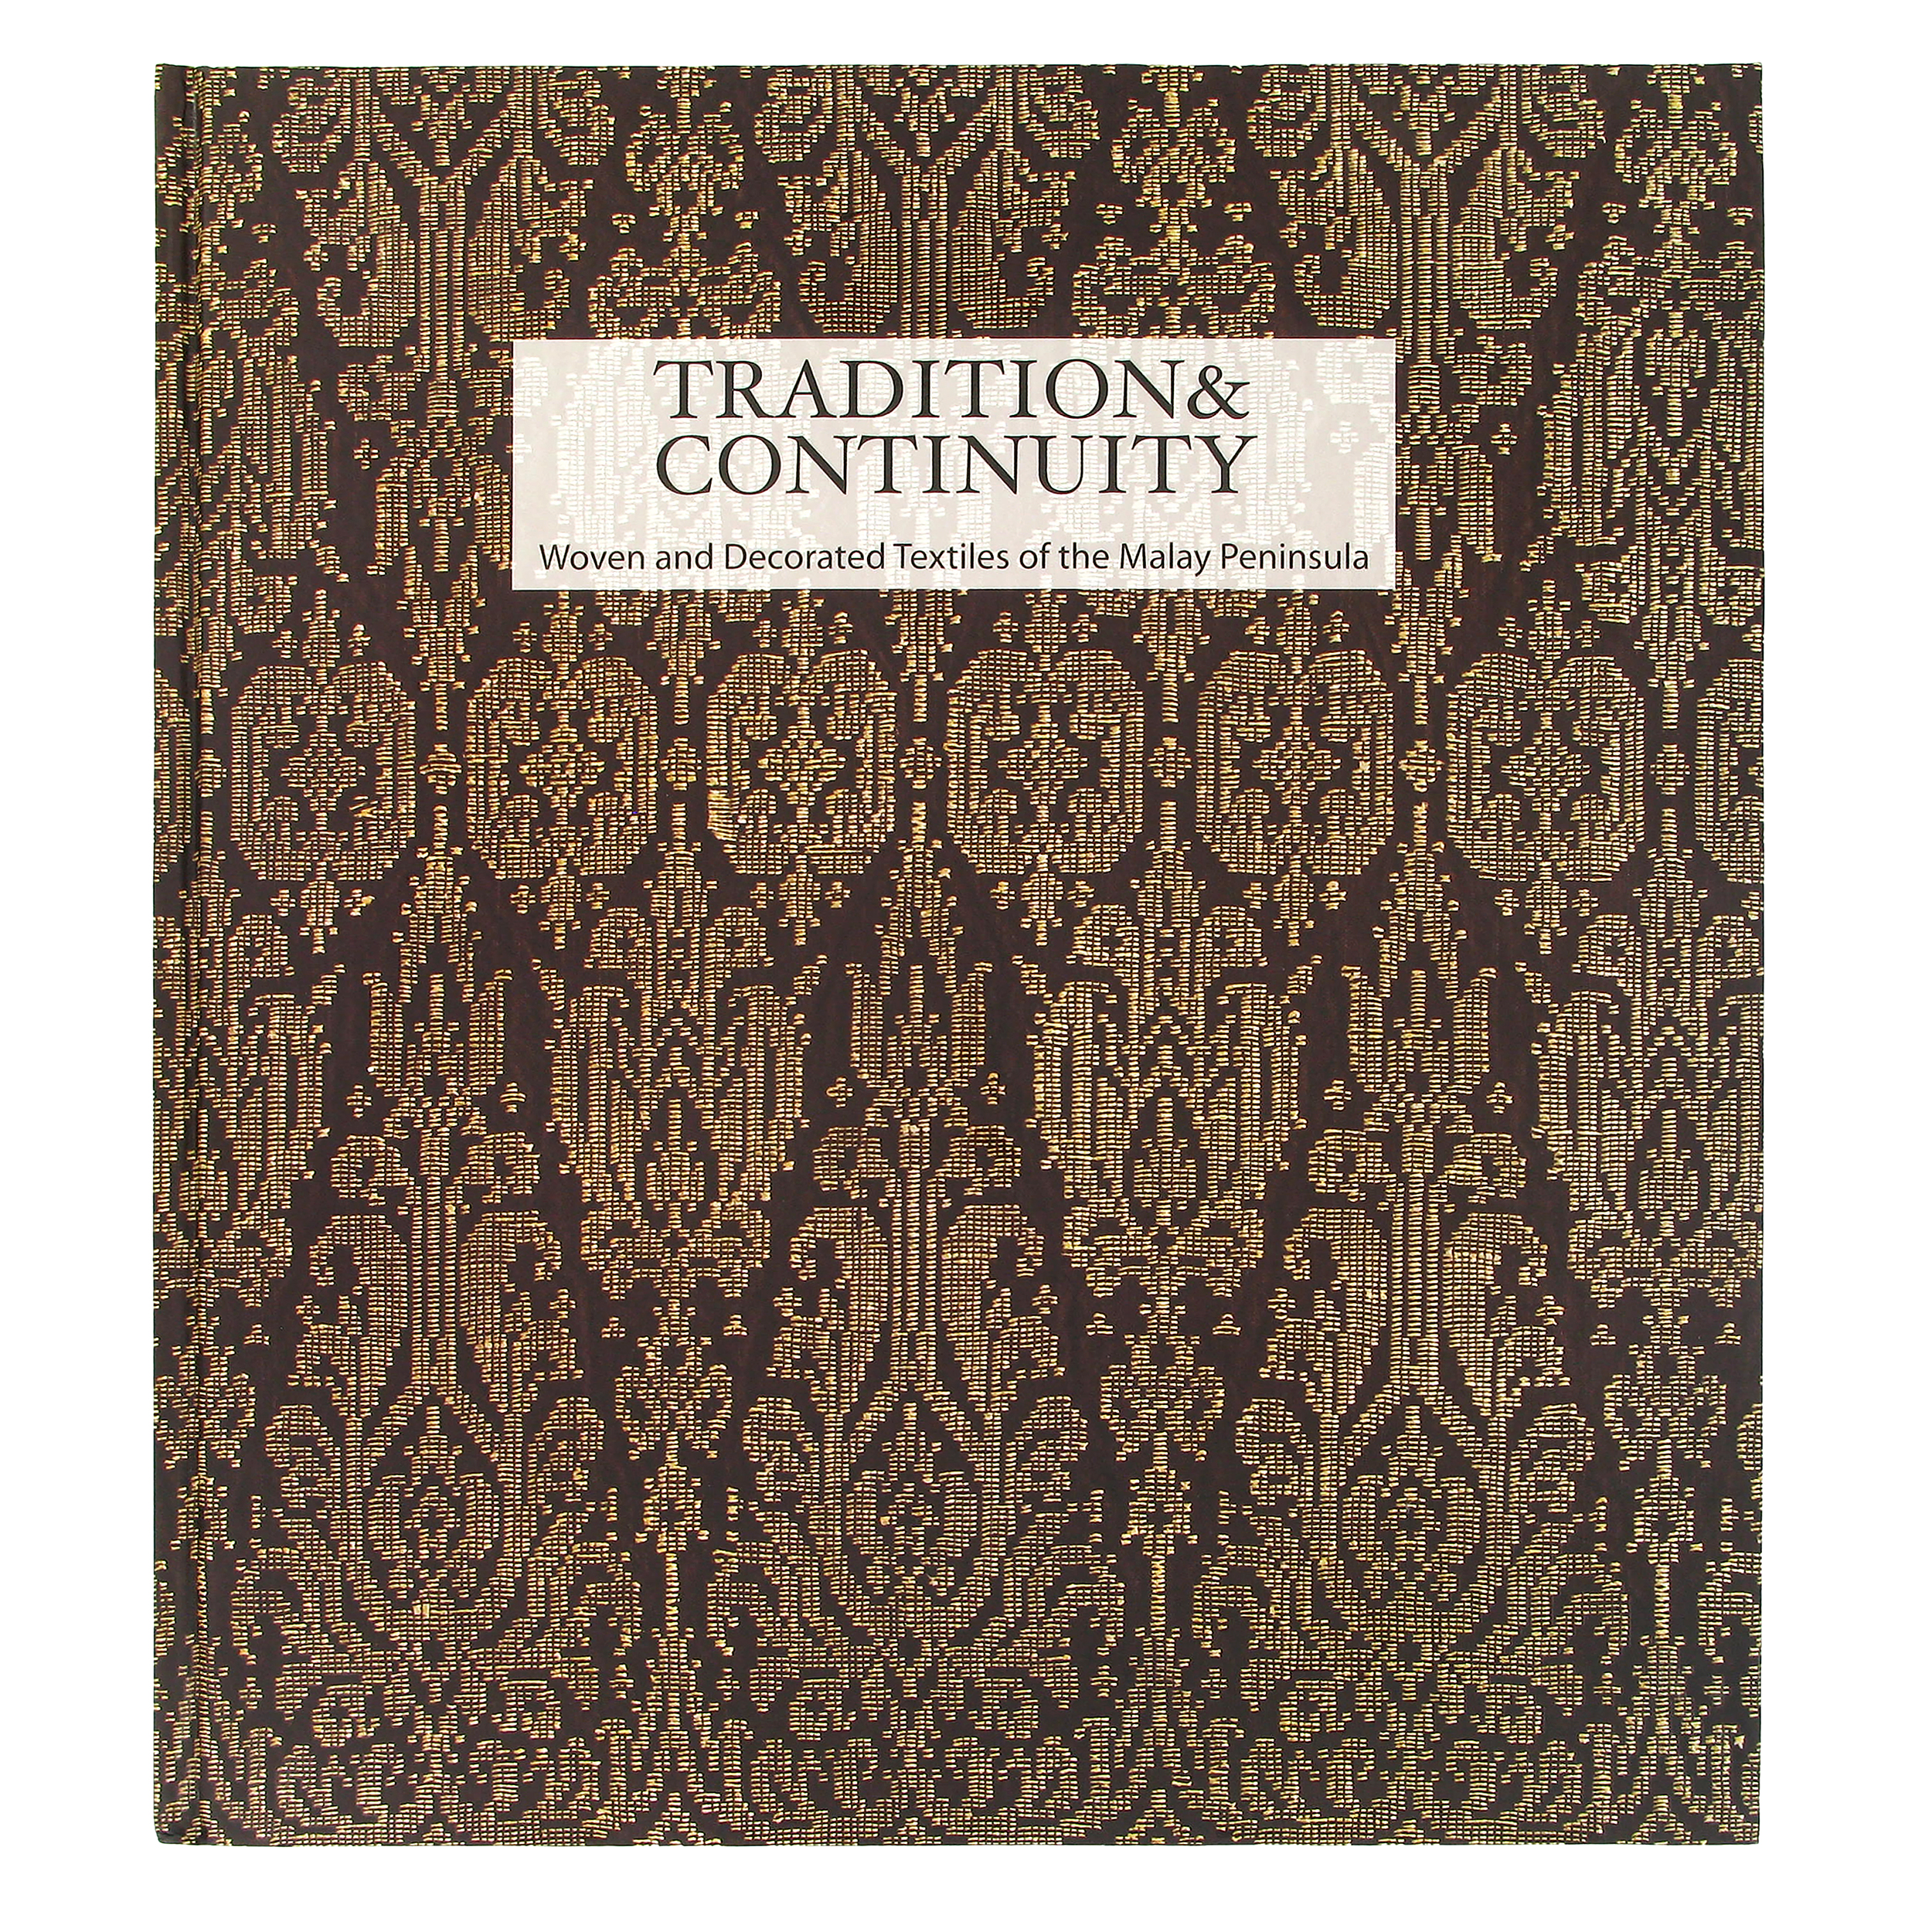 Tradition & continuity: Woven and decorated textiles of Malay Peninsula